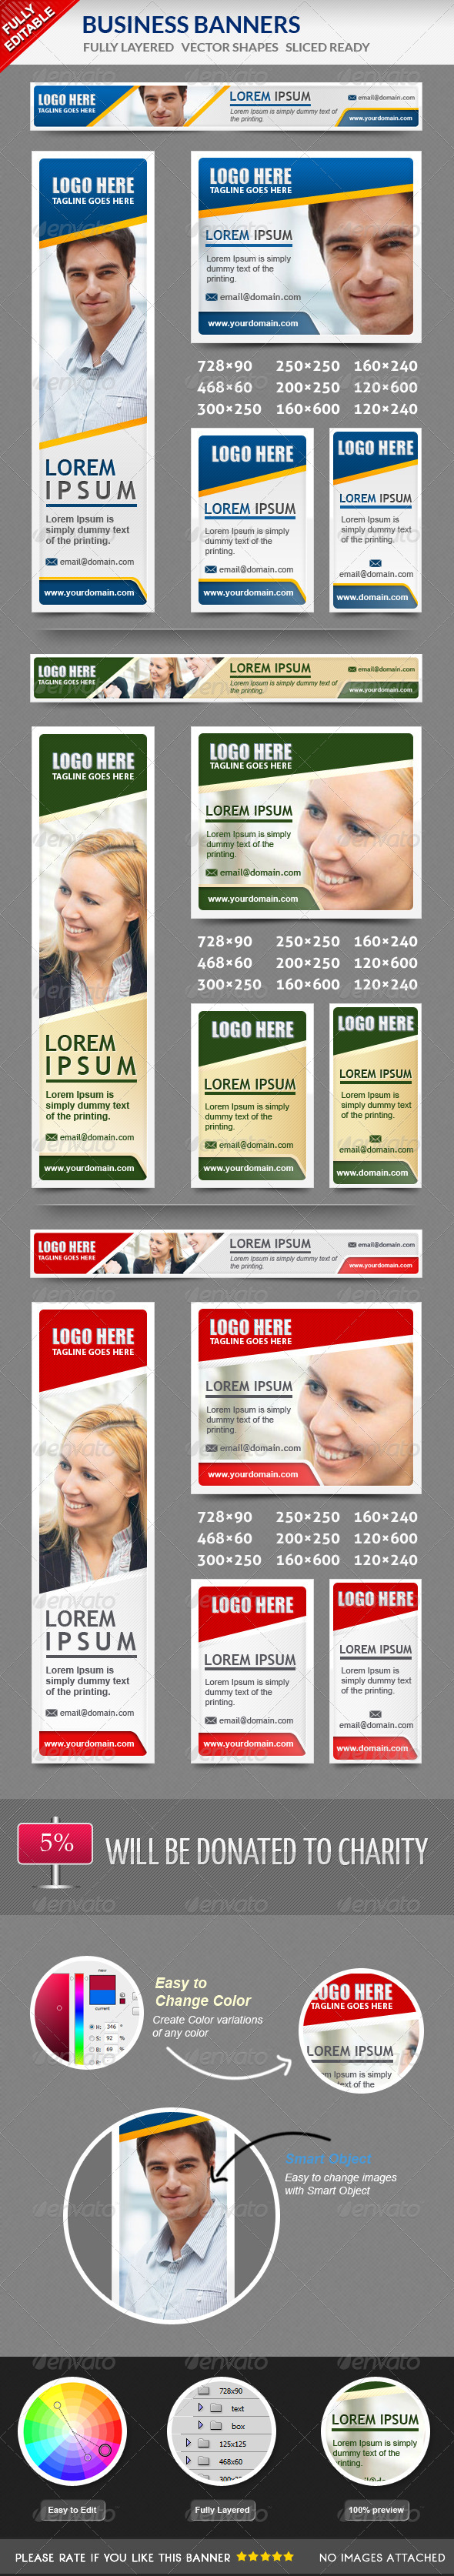 GraphicRiver Business Banners 5229007